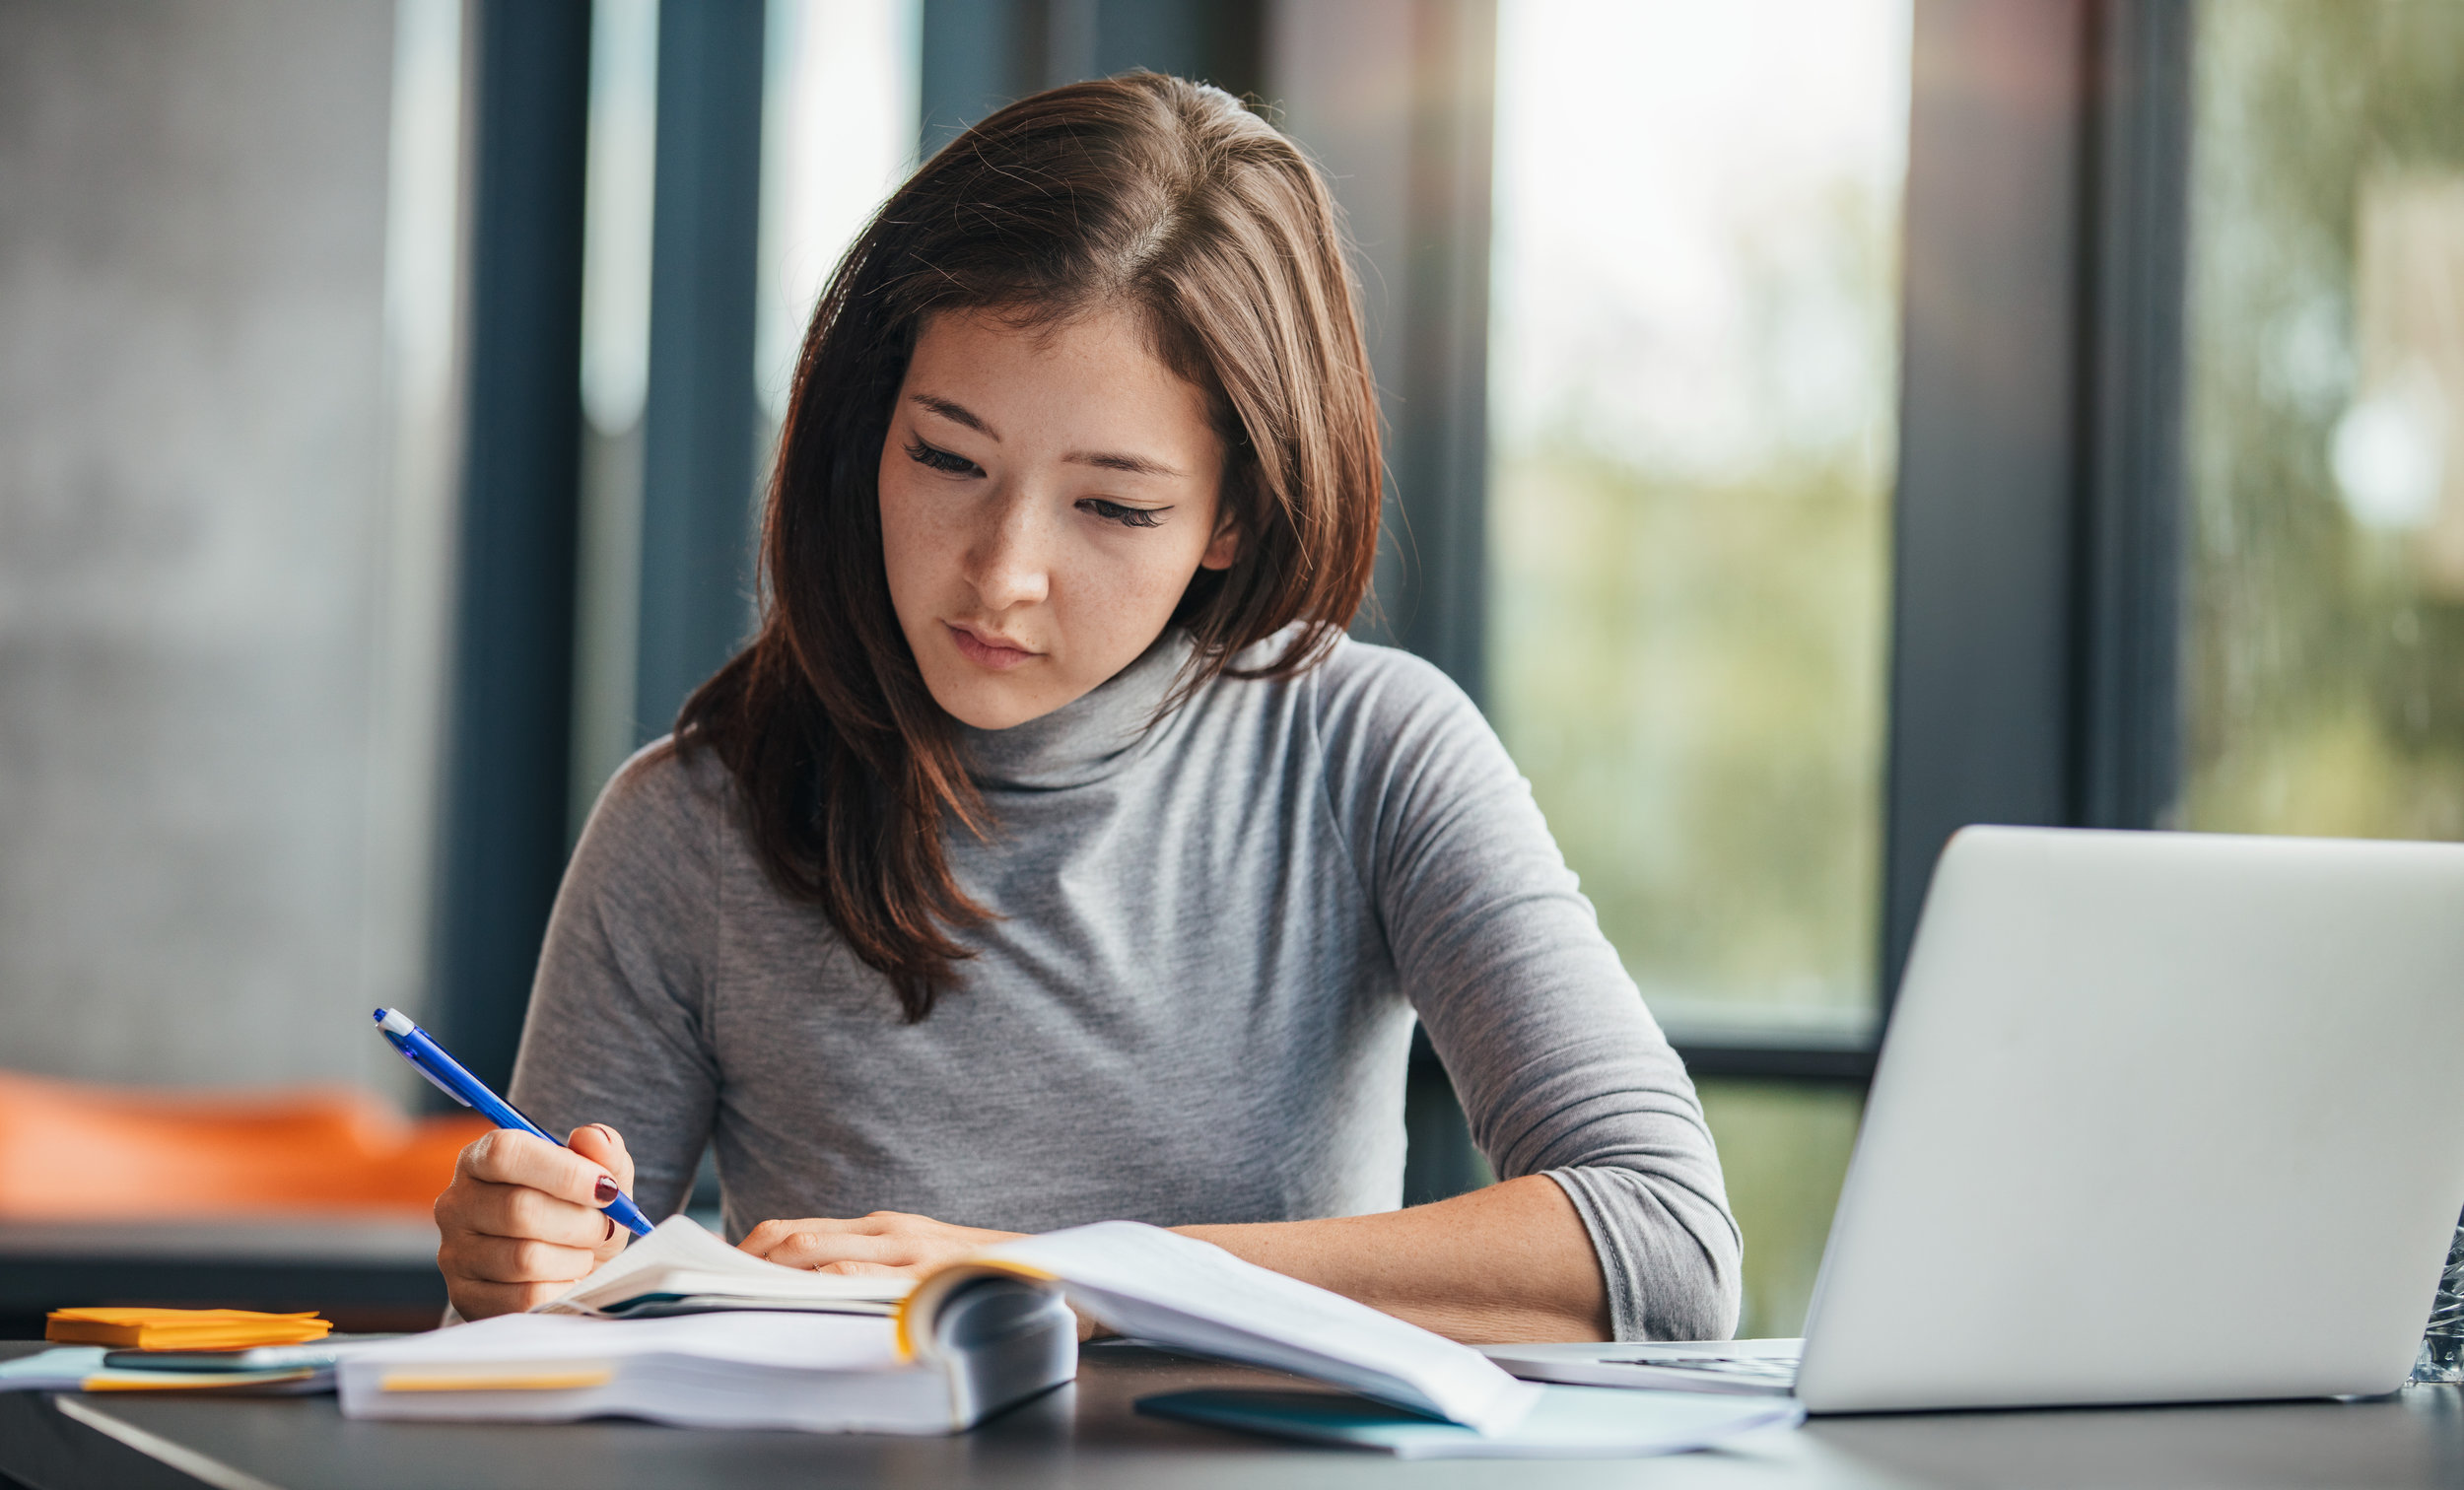 We'll help you get the most from law school - Law classes can be challenging, and it's very easy to fall behind. We can make sure you're getting the most out of law school, whether it's learning the intricacies of civil procedure or writing a legal memo!